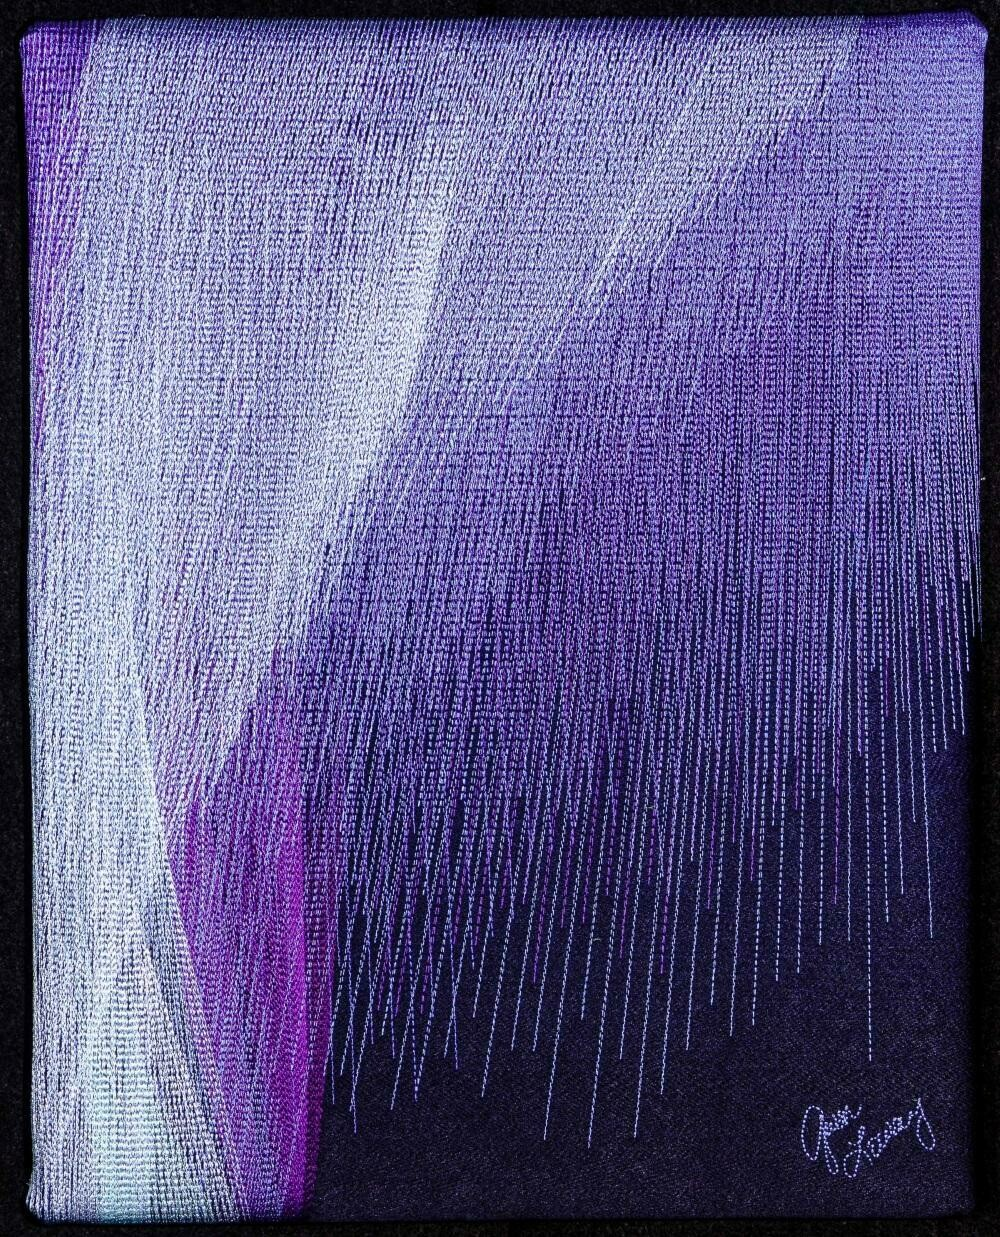 Machine stitching on canvas 19 (Title unspecified)